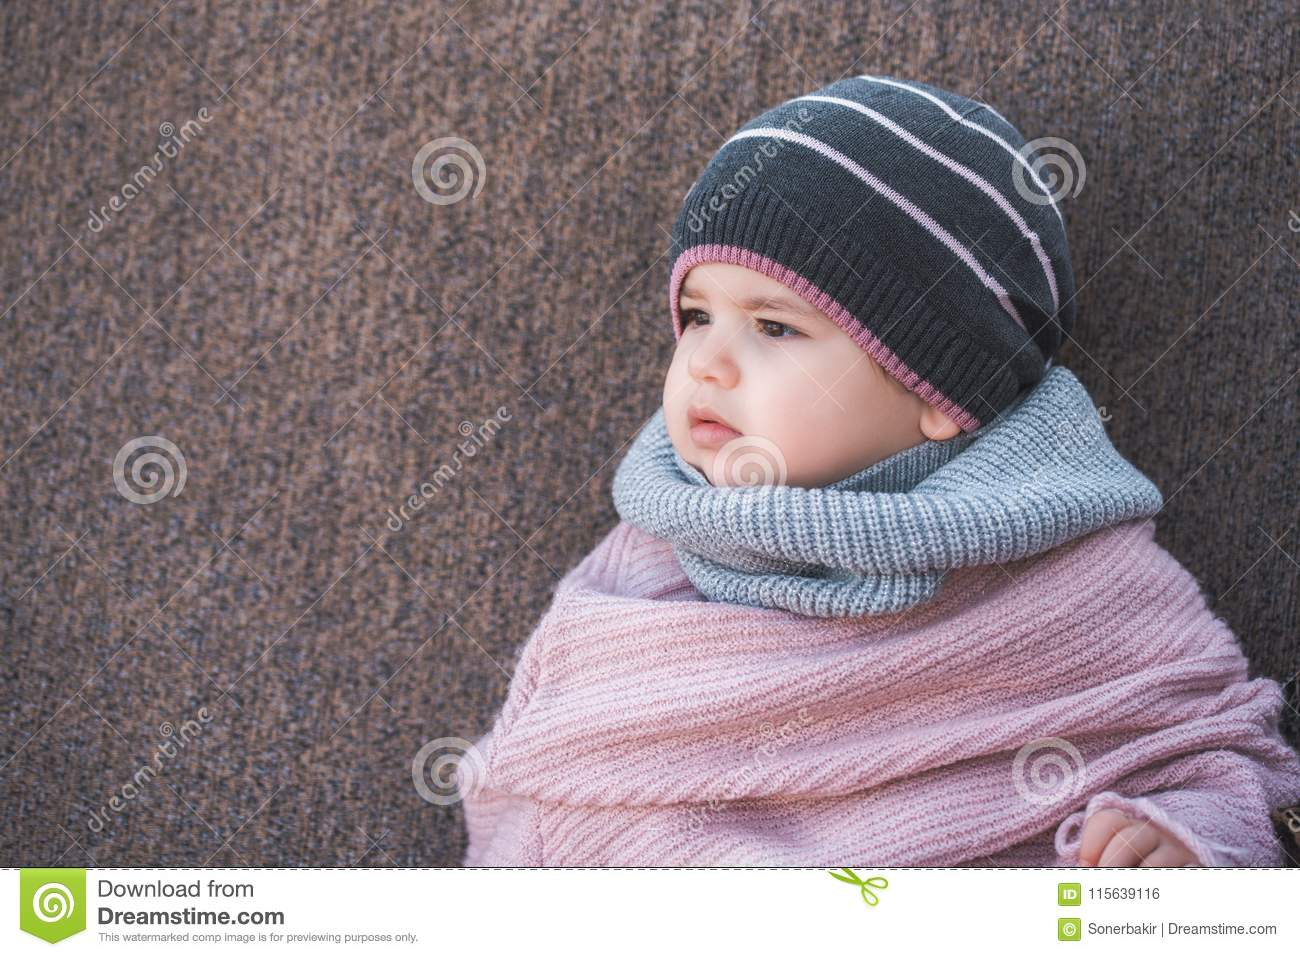 a985f584a4853 Cute baby girl wearing a warm winter hat and a colorful scarf on a brown  background.